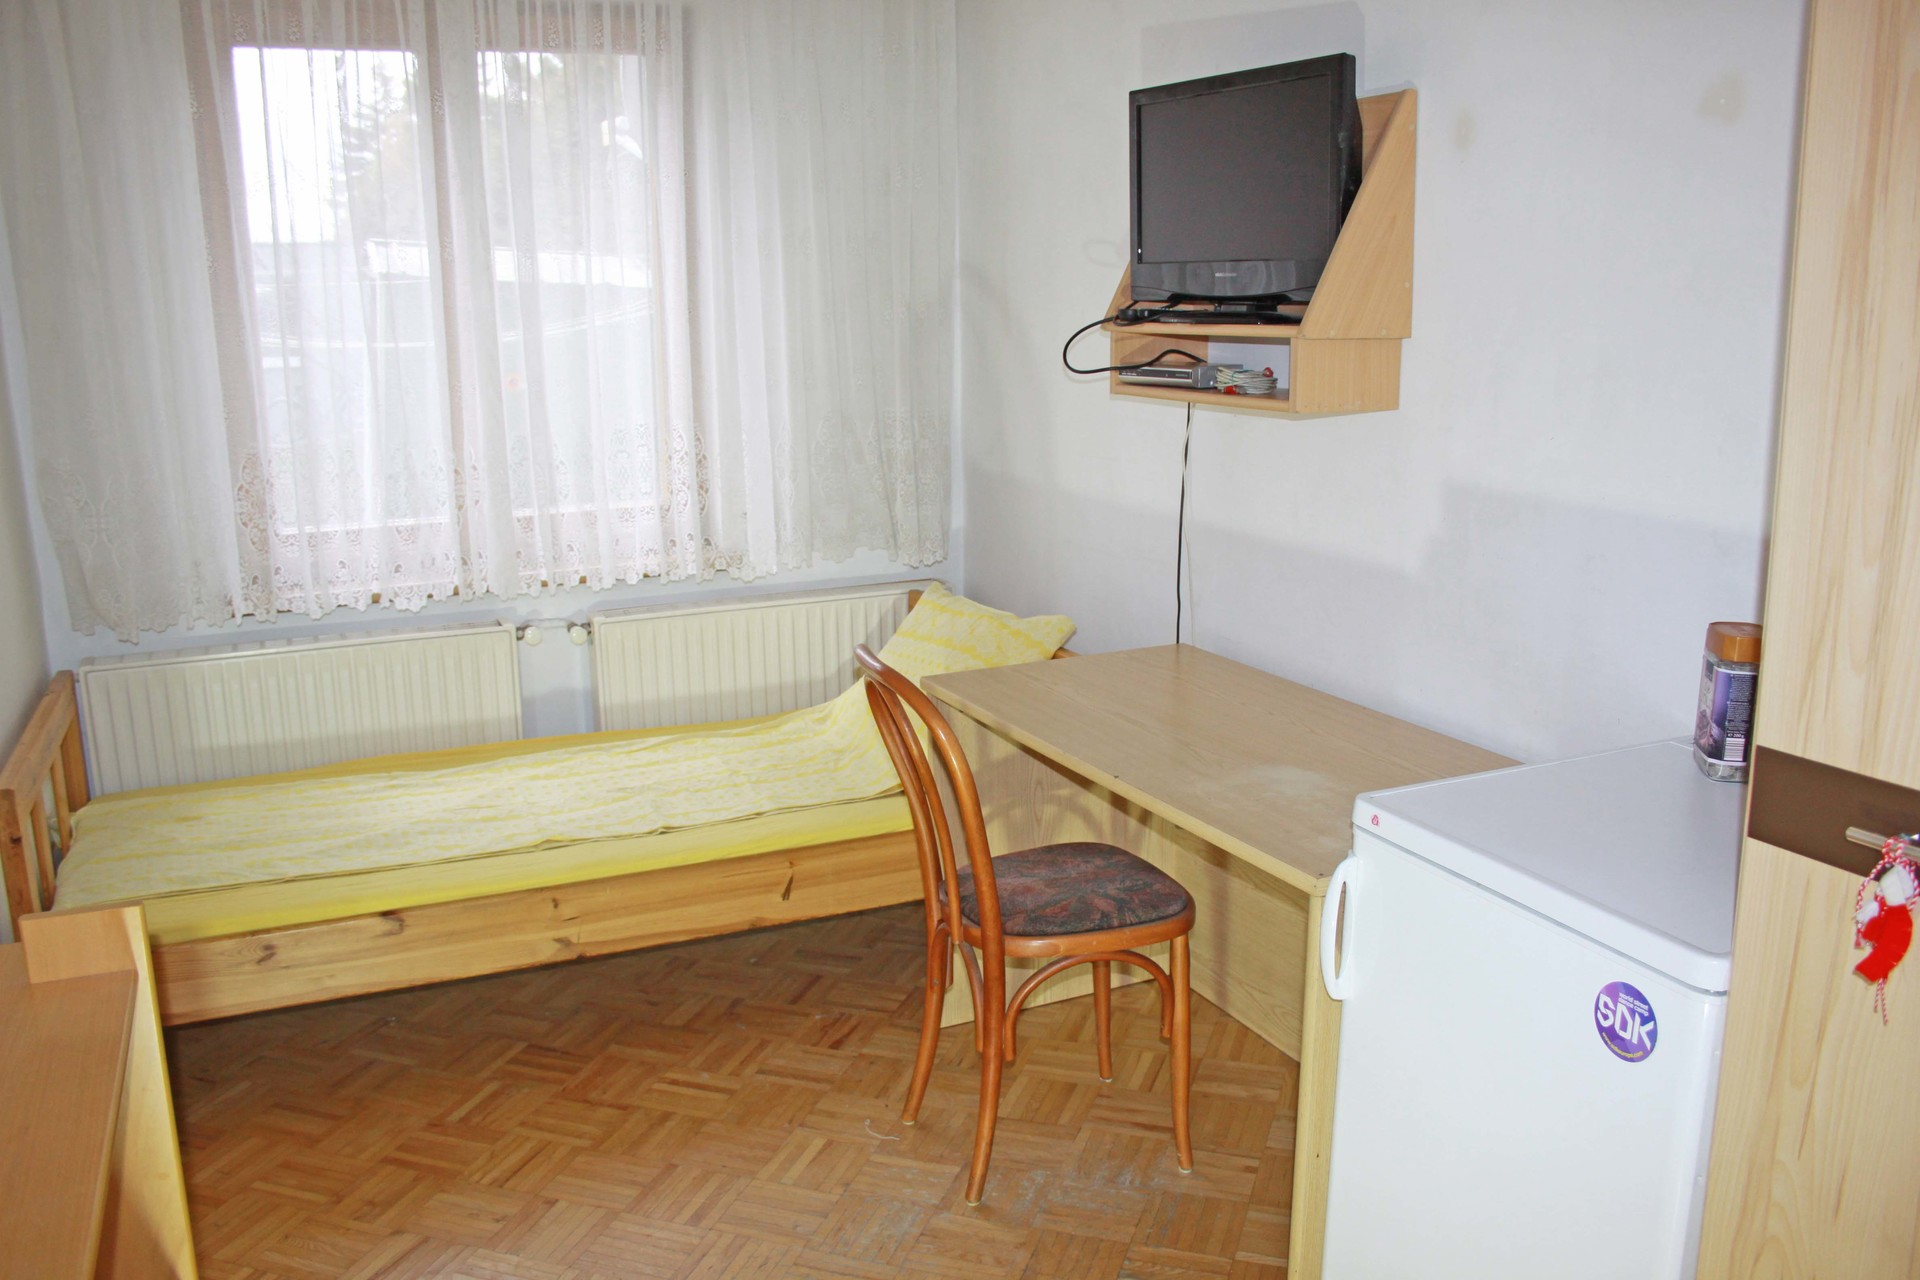 furnished-studio-apartment-viennas-22nd-district-fa1151ee540303a9527577bef57468fa